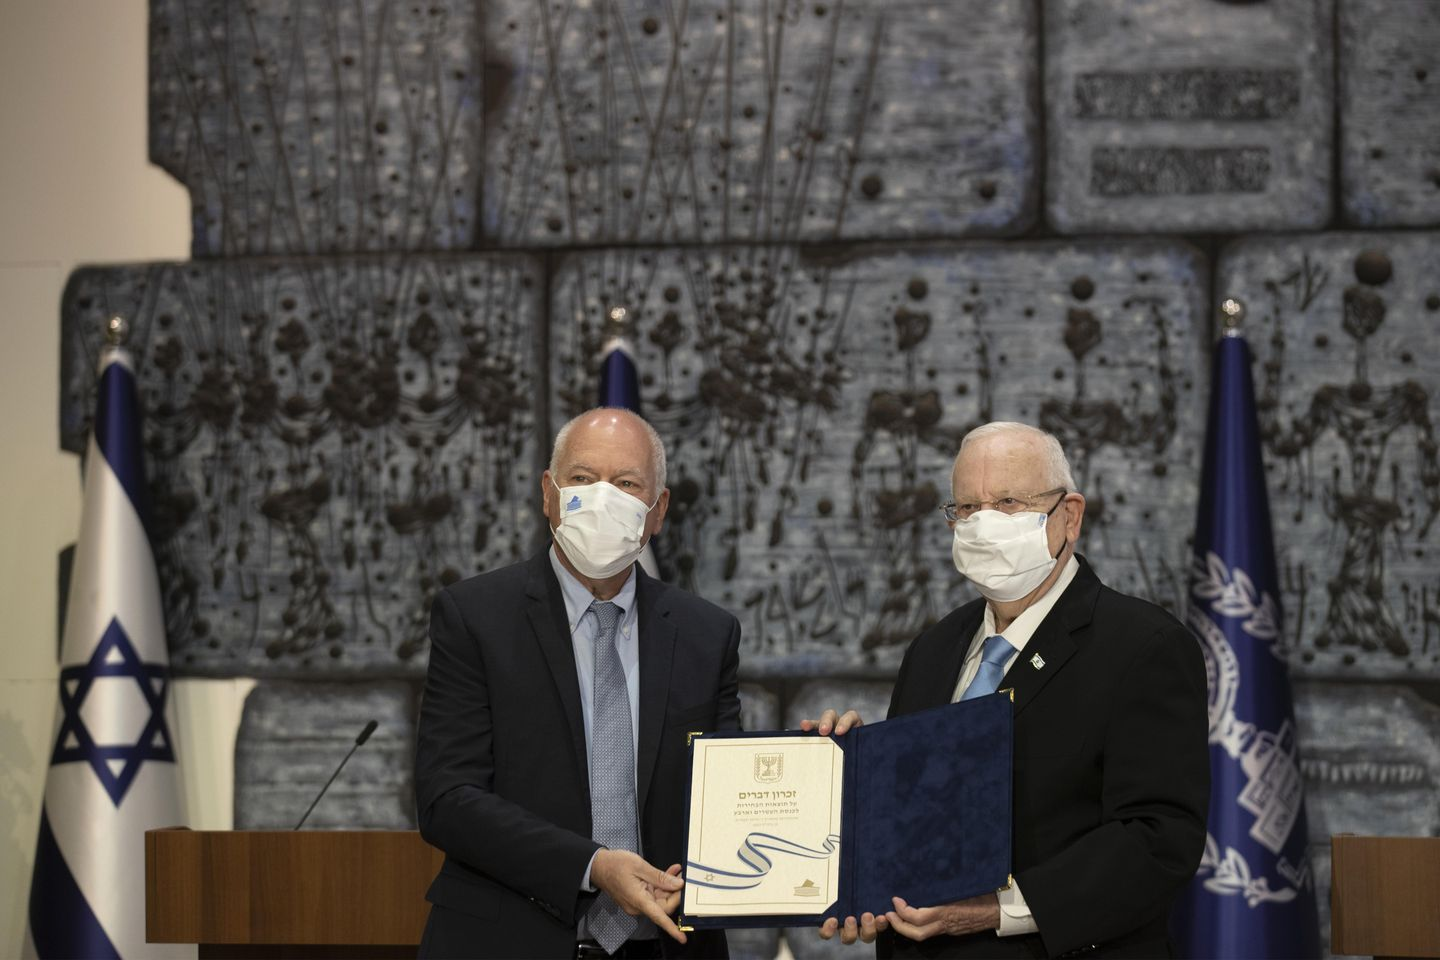 Israel president: 'Unconventional' unions needed after vote